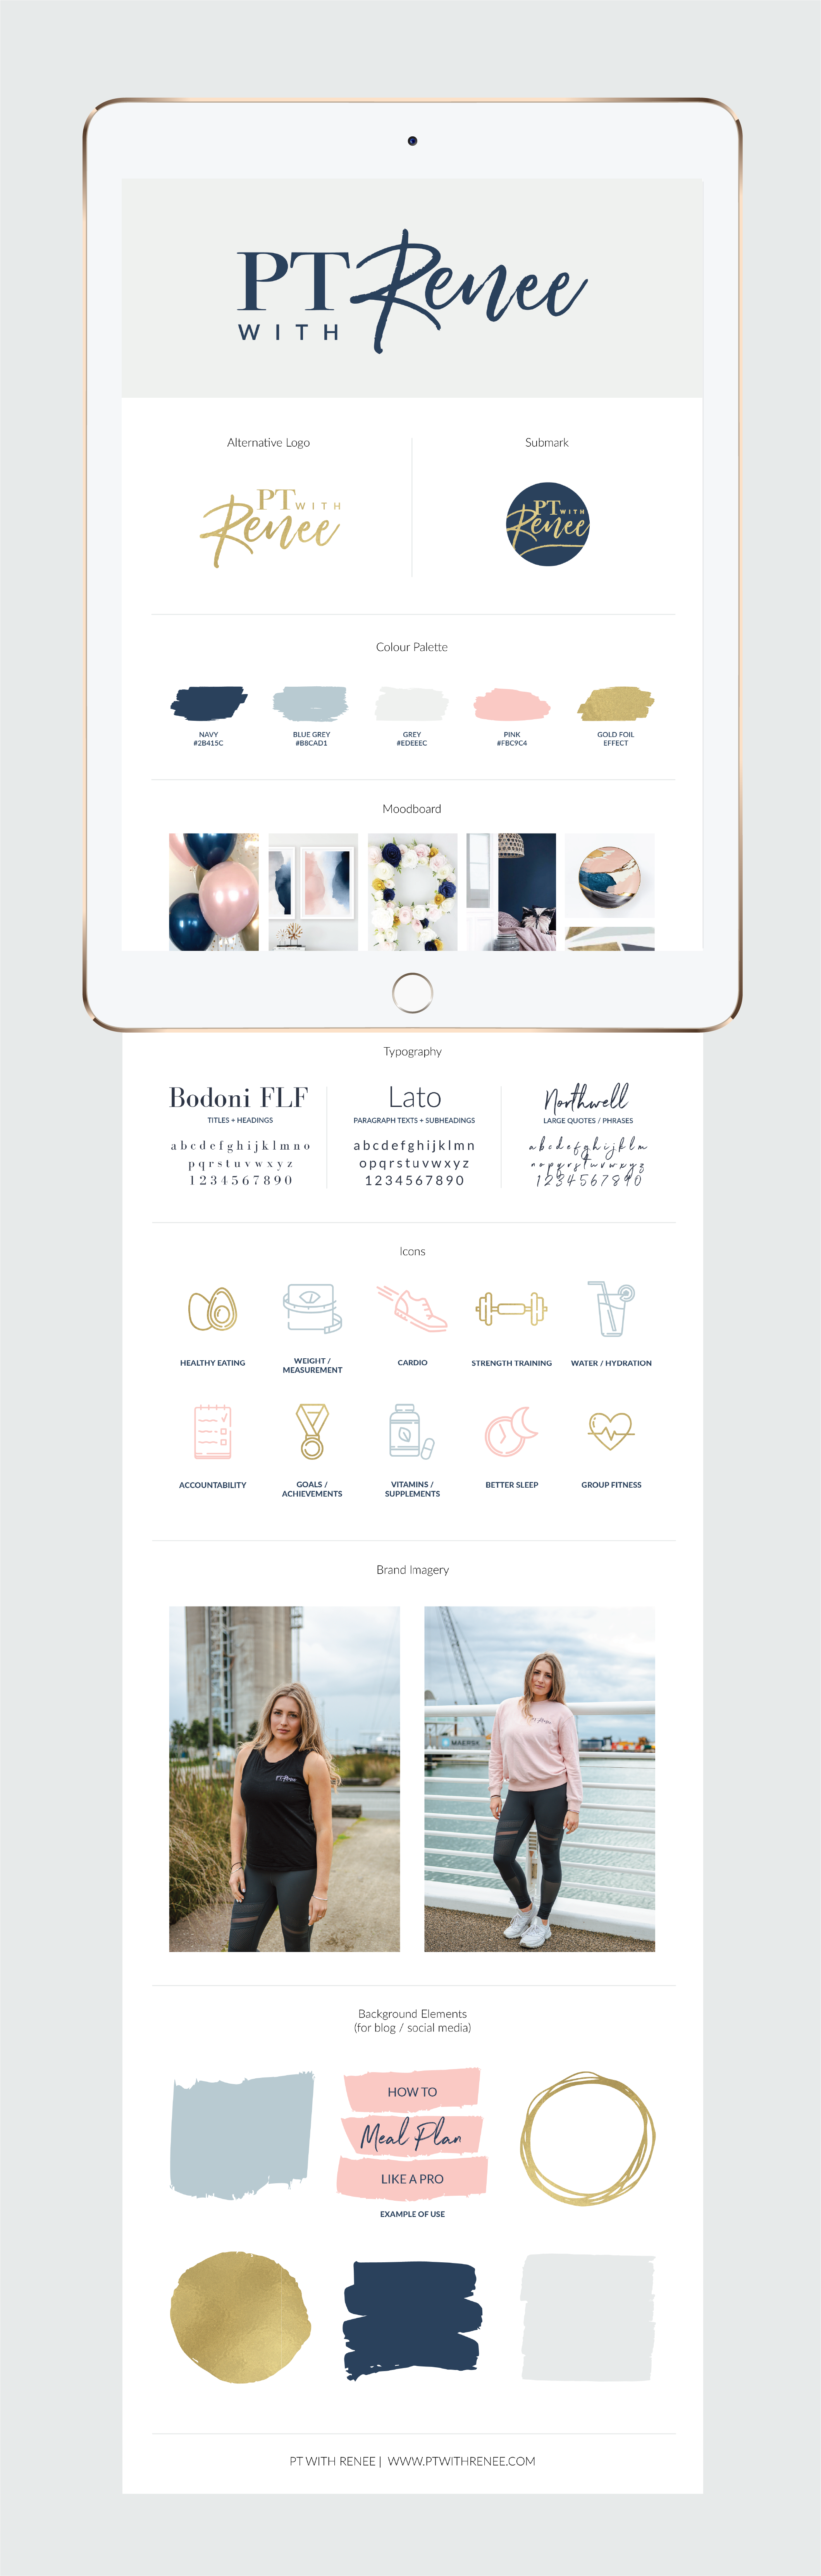 PT with Renee - NEW brand guidelines - iPad View.png